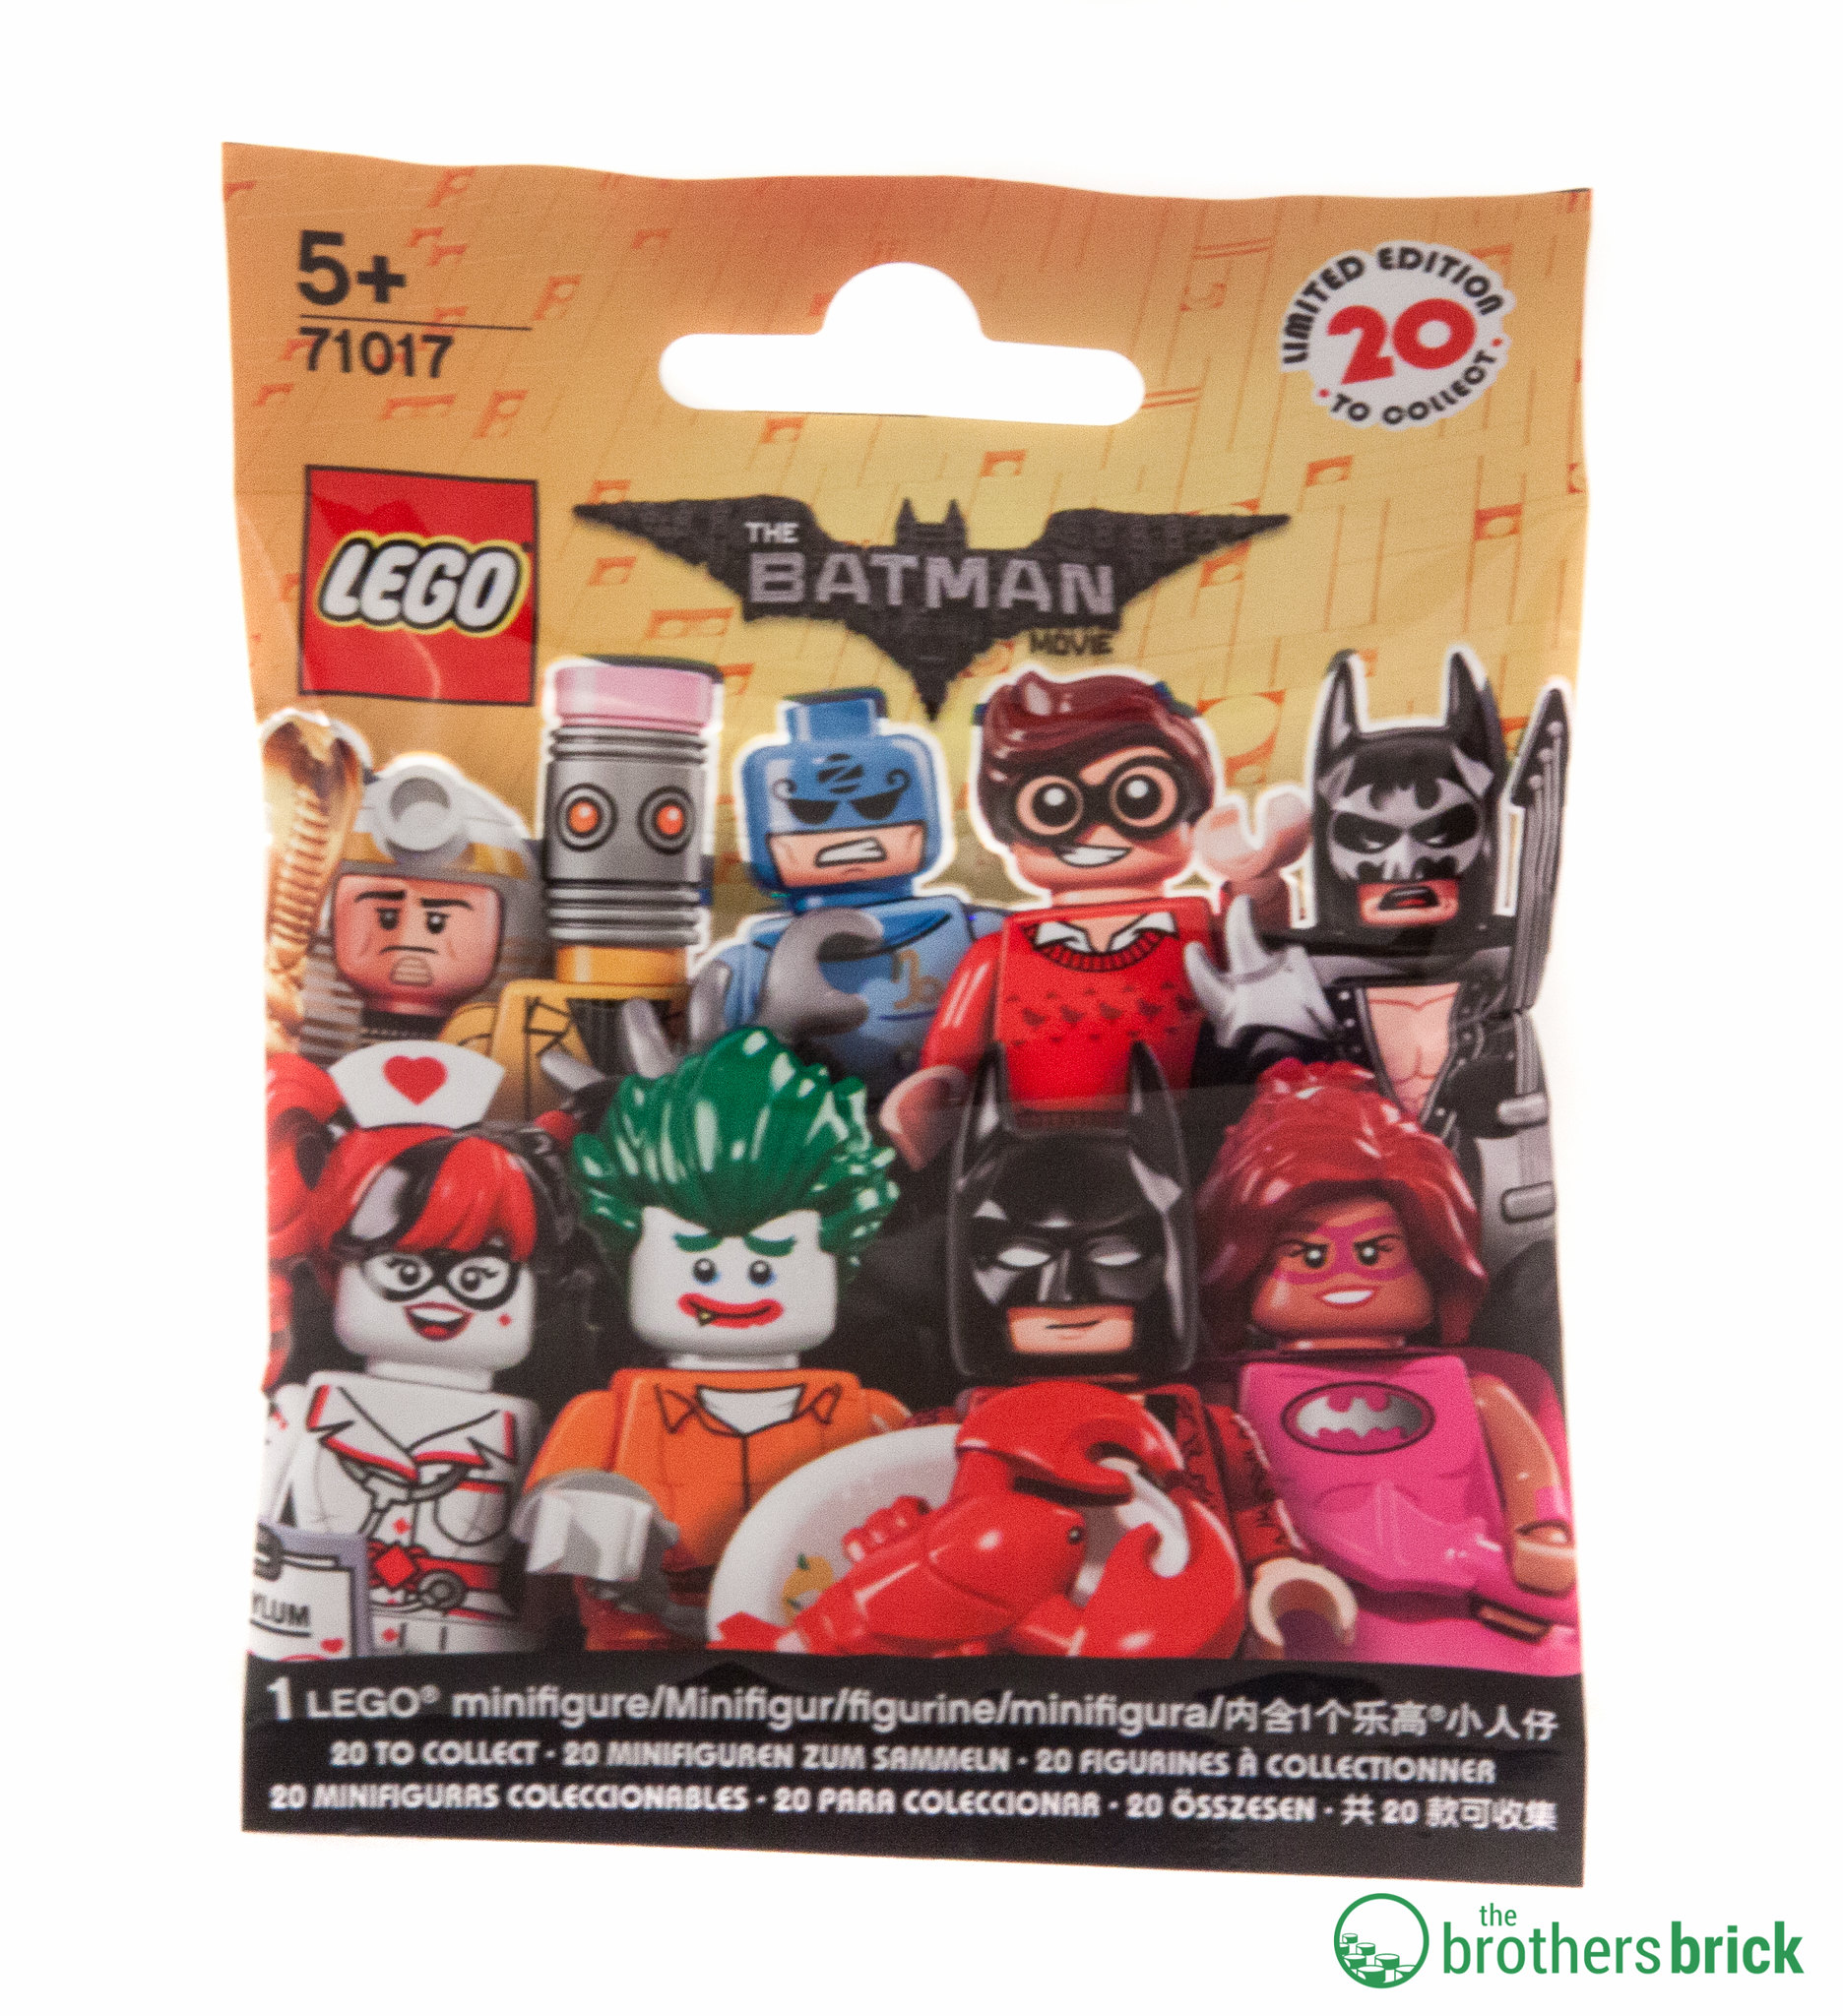 the lego batman movie collectible minifigures 71017 review the brothers brick the brothers. Black Bedroom Furniture Sets. Home Design Ideas